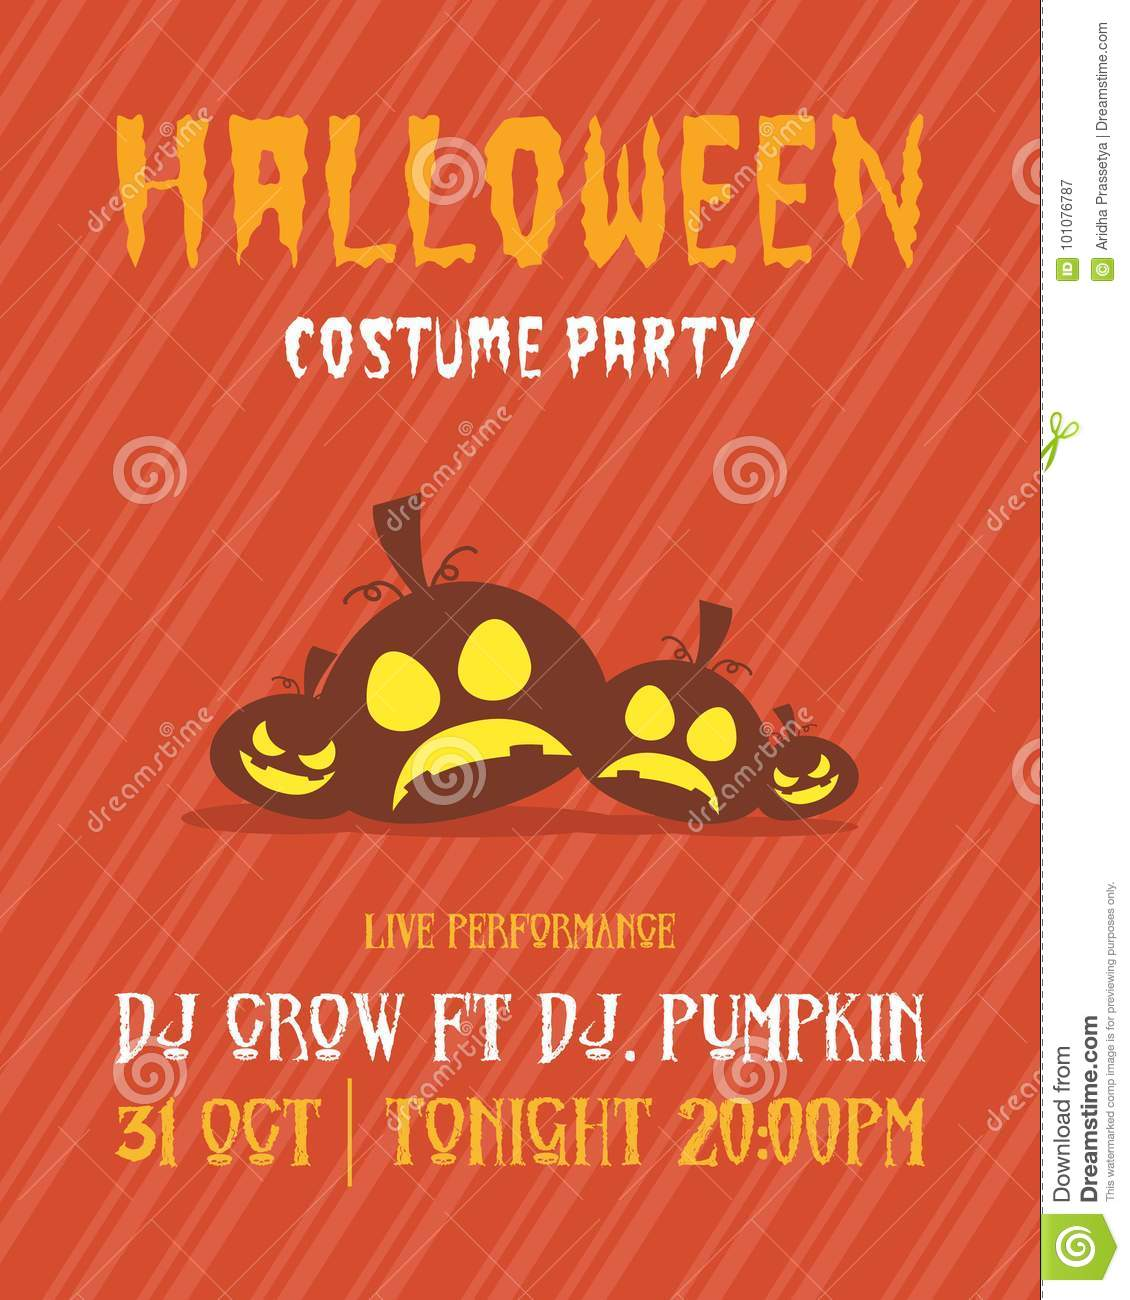 halloween party poster design collection stock vector - illustration